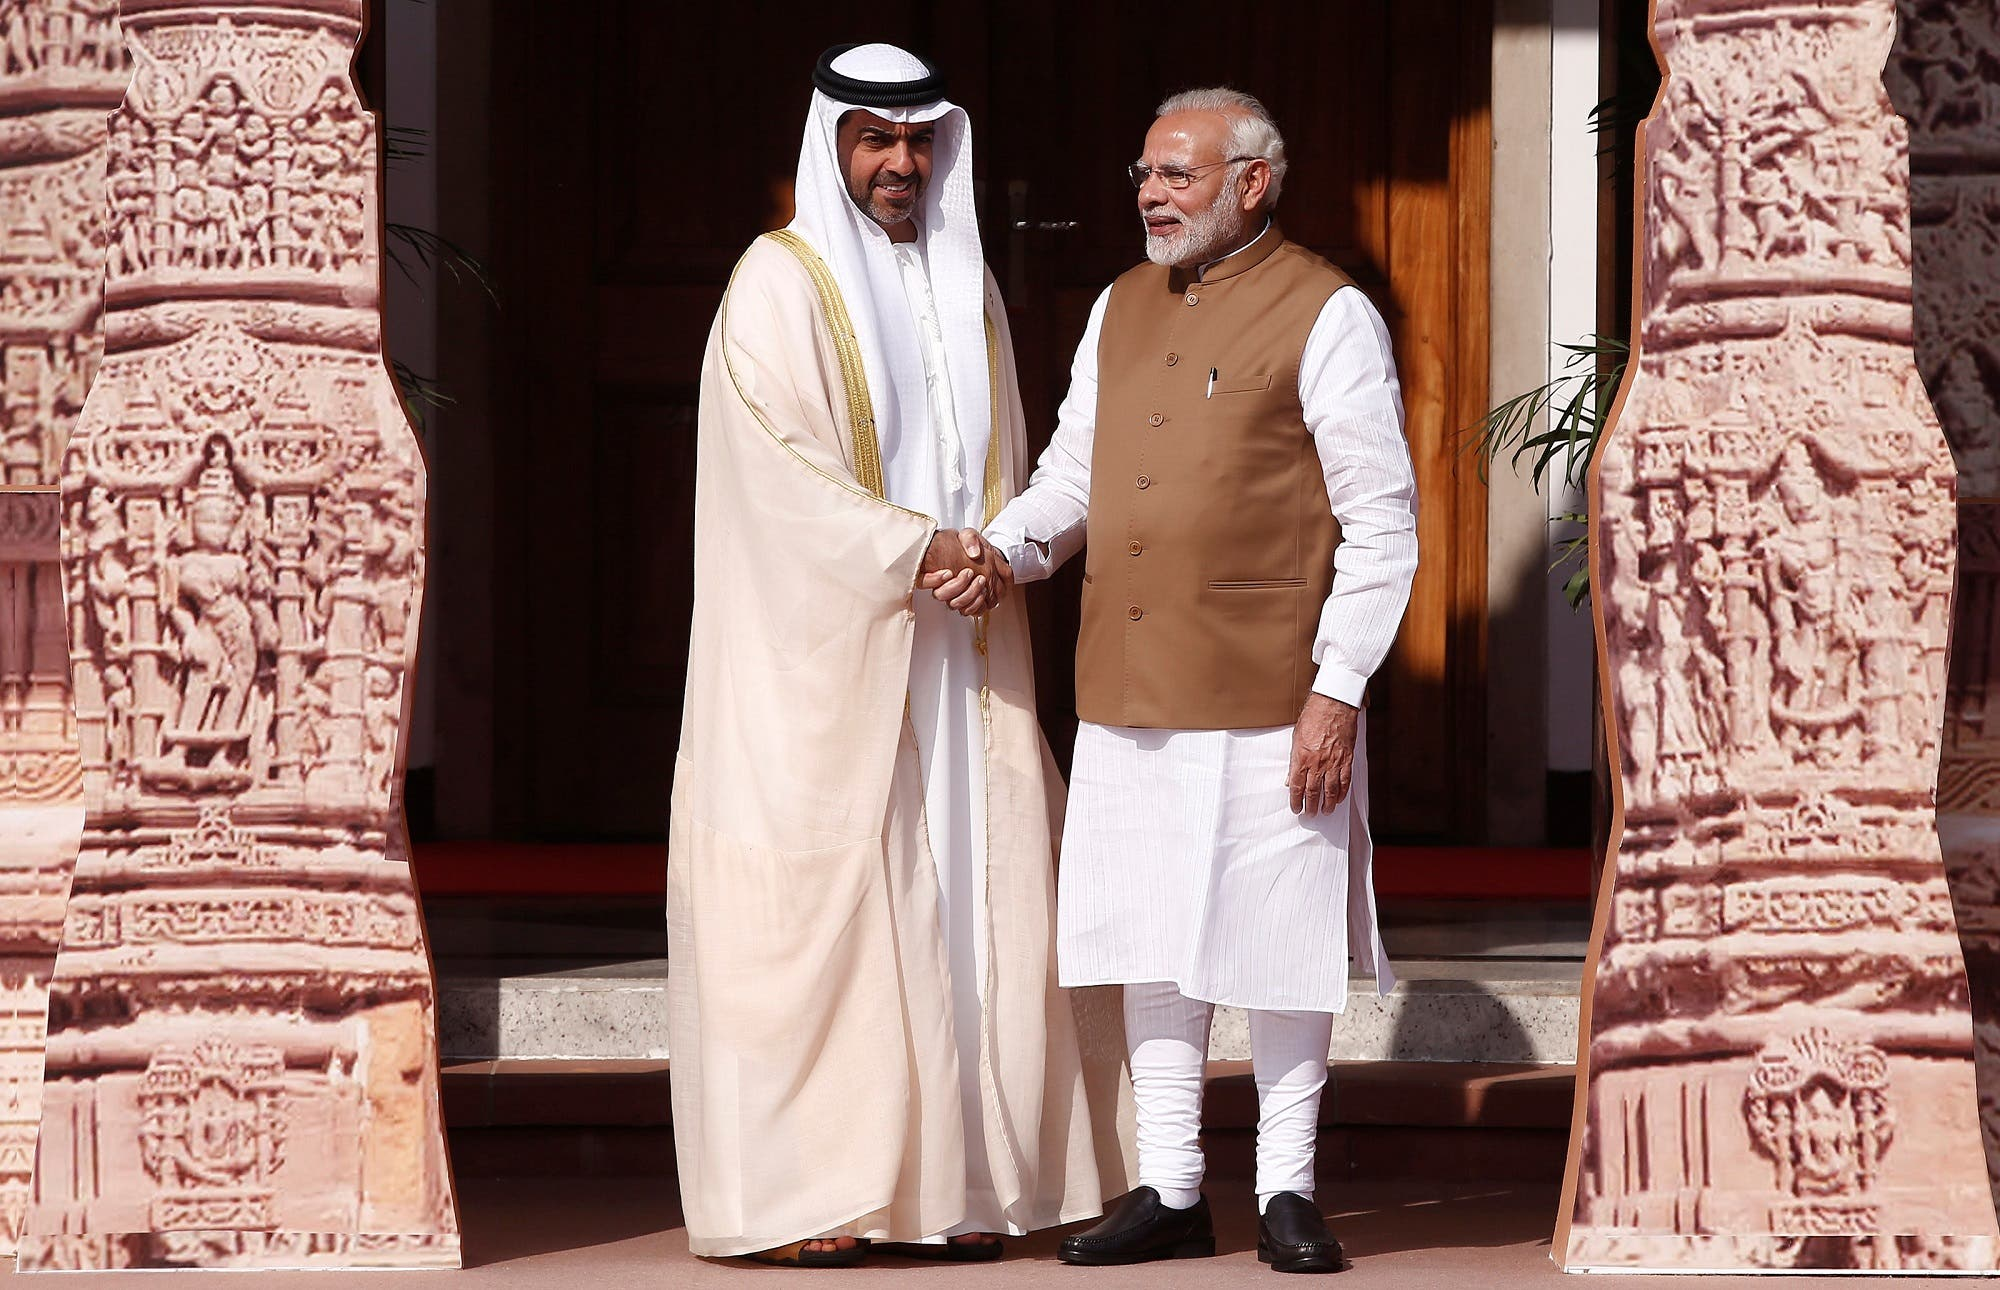 Narendra Modi with Sheikh Hamed Bin Zayed Al Nahyan, Chairman of the Crown Prince Court of Abu Dhabi in New Delhi on March 11, 2018. (Reuters)